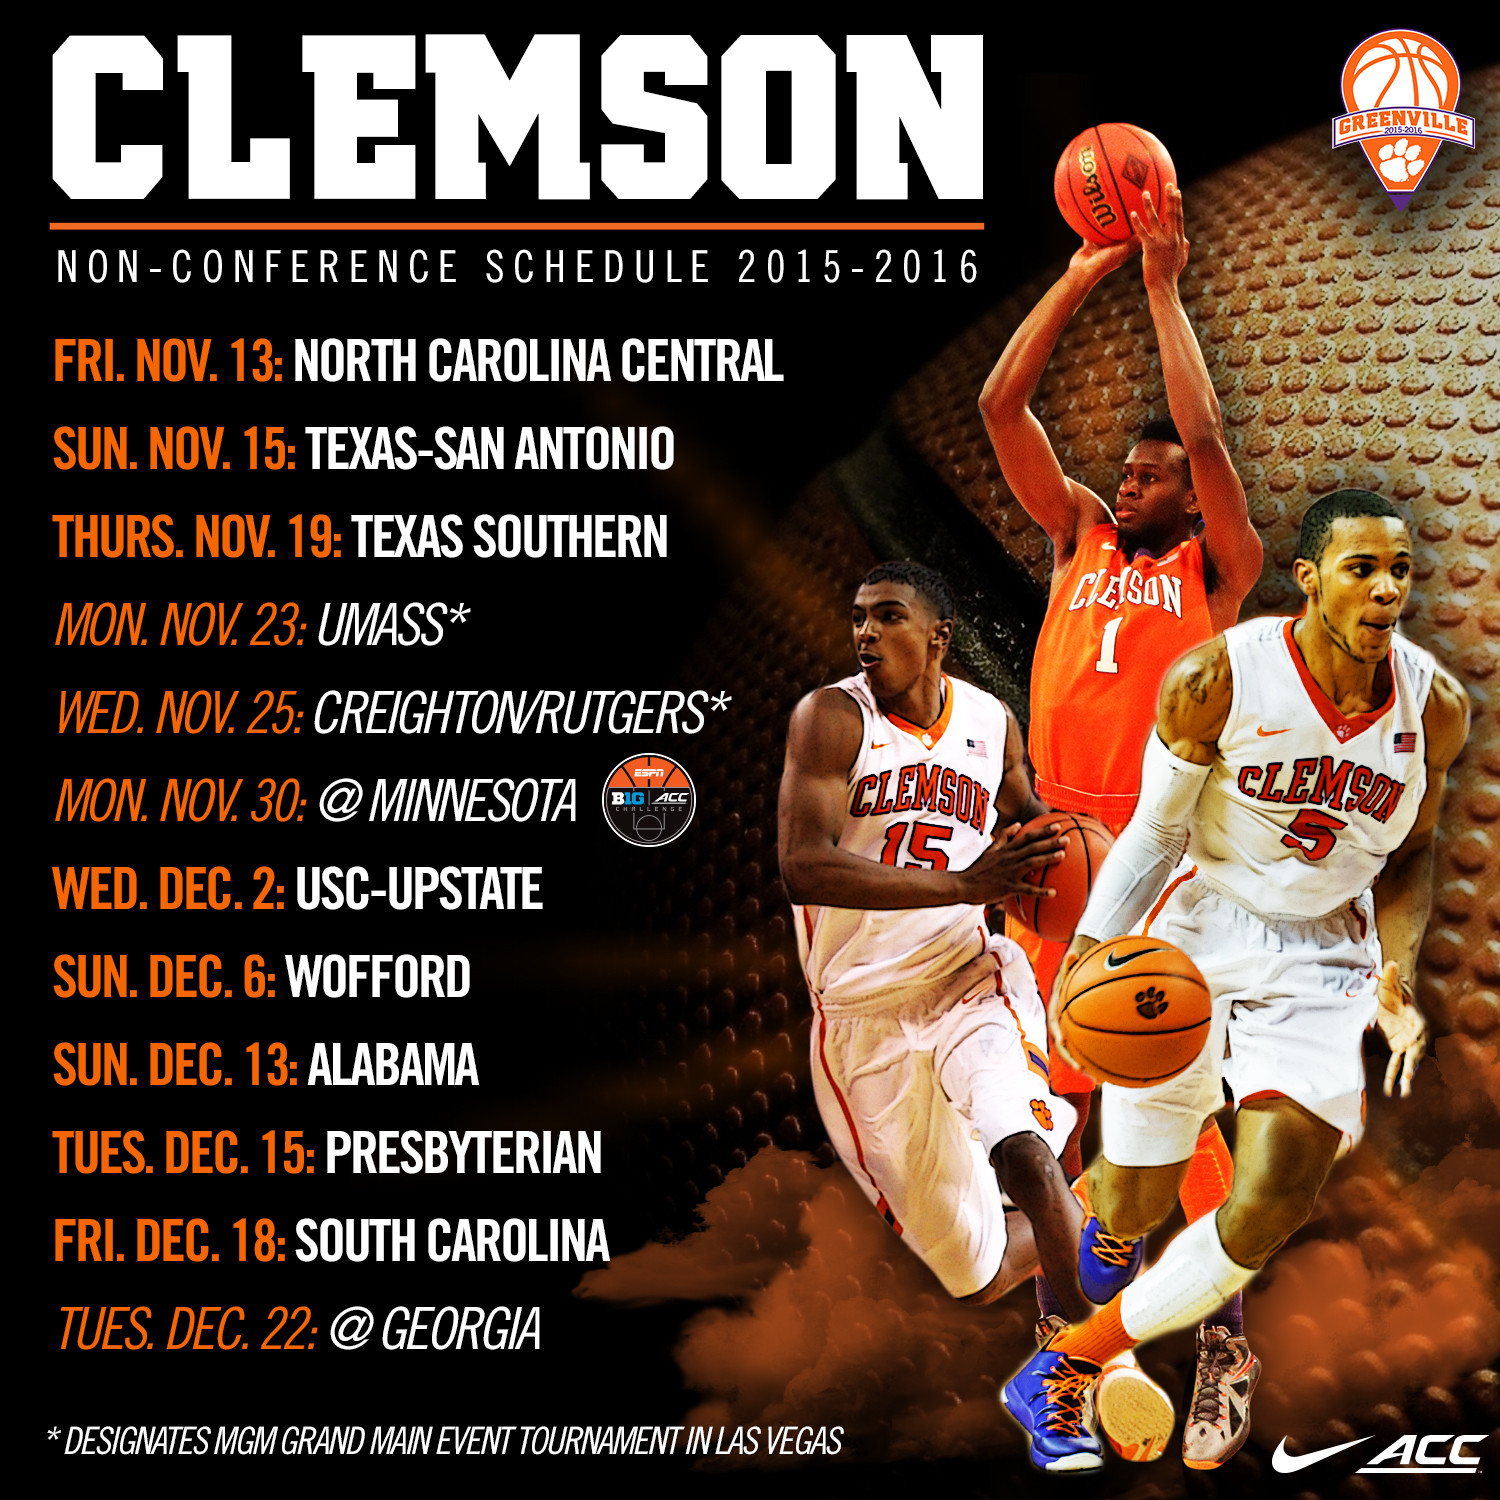 2015-16 Non-Conference Schedule Announced